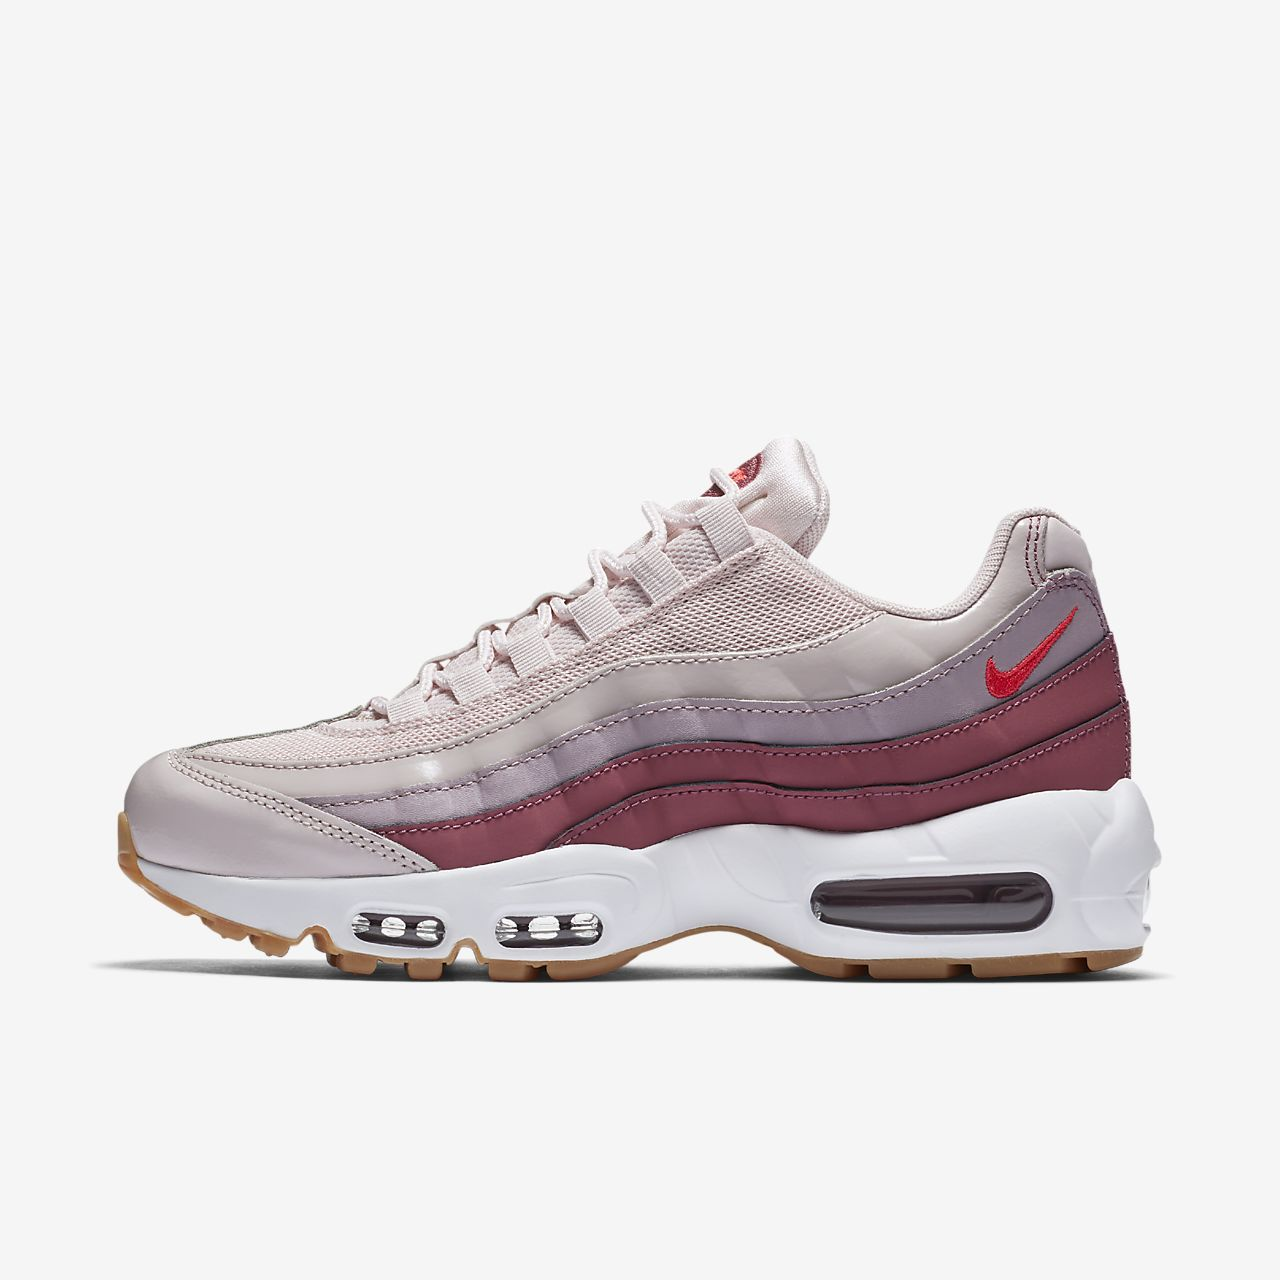 nike aire max 95 femme, ... Nike Air Max 95 OG – Chaussure pour Femme